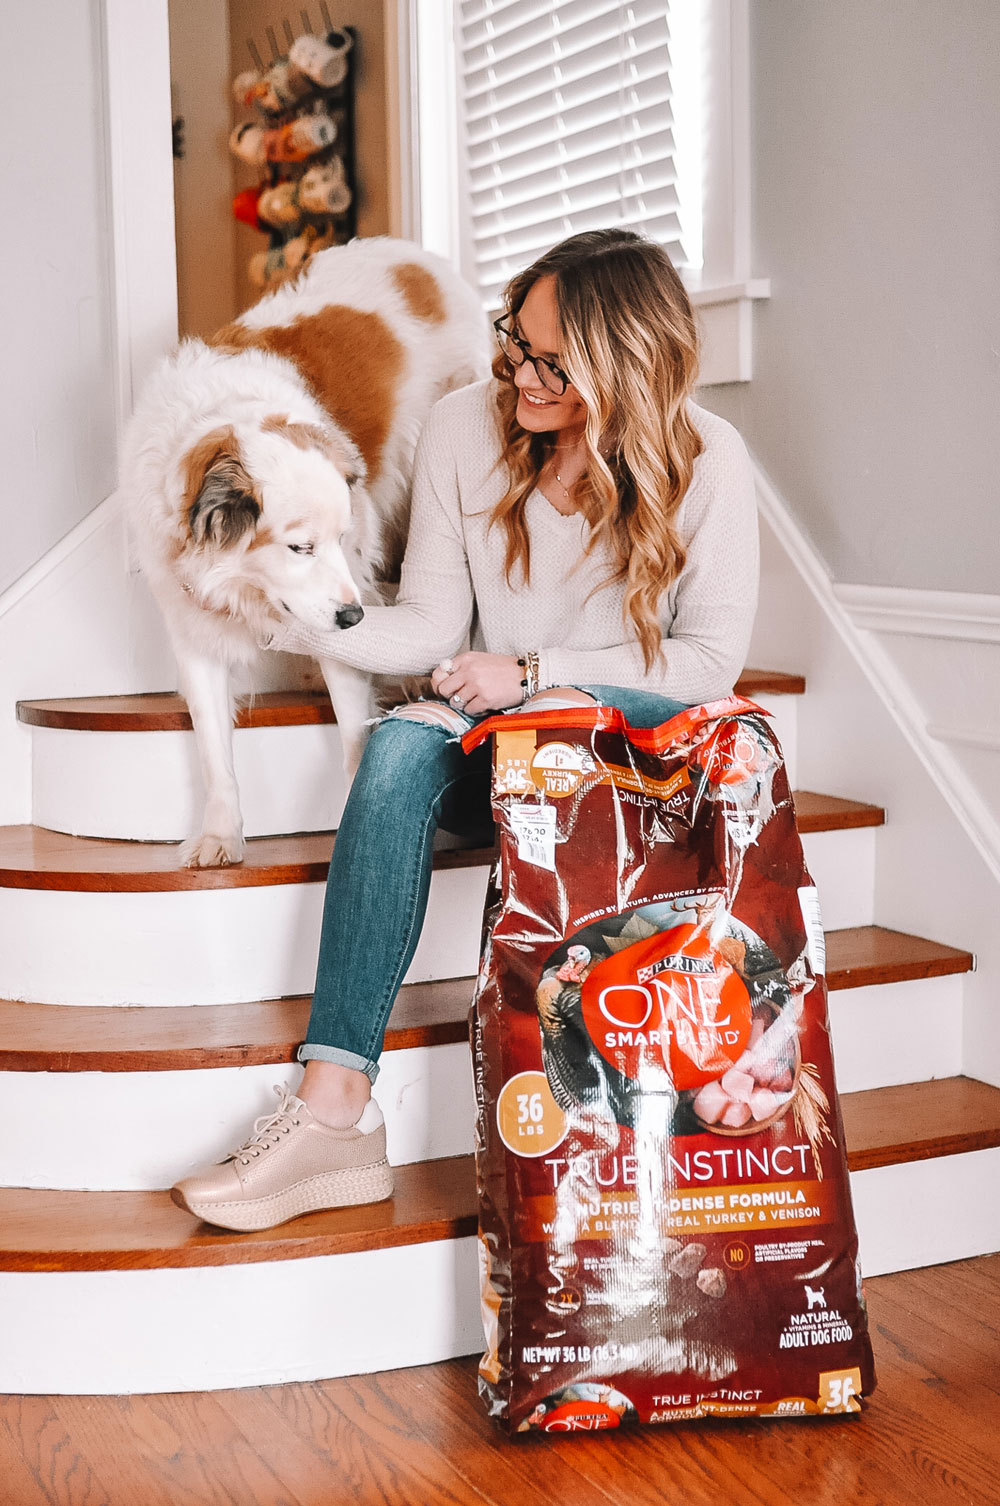 Blogger Amanda Martin's dog takes the Purina 28 Day Challenge